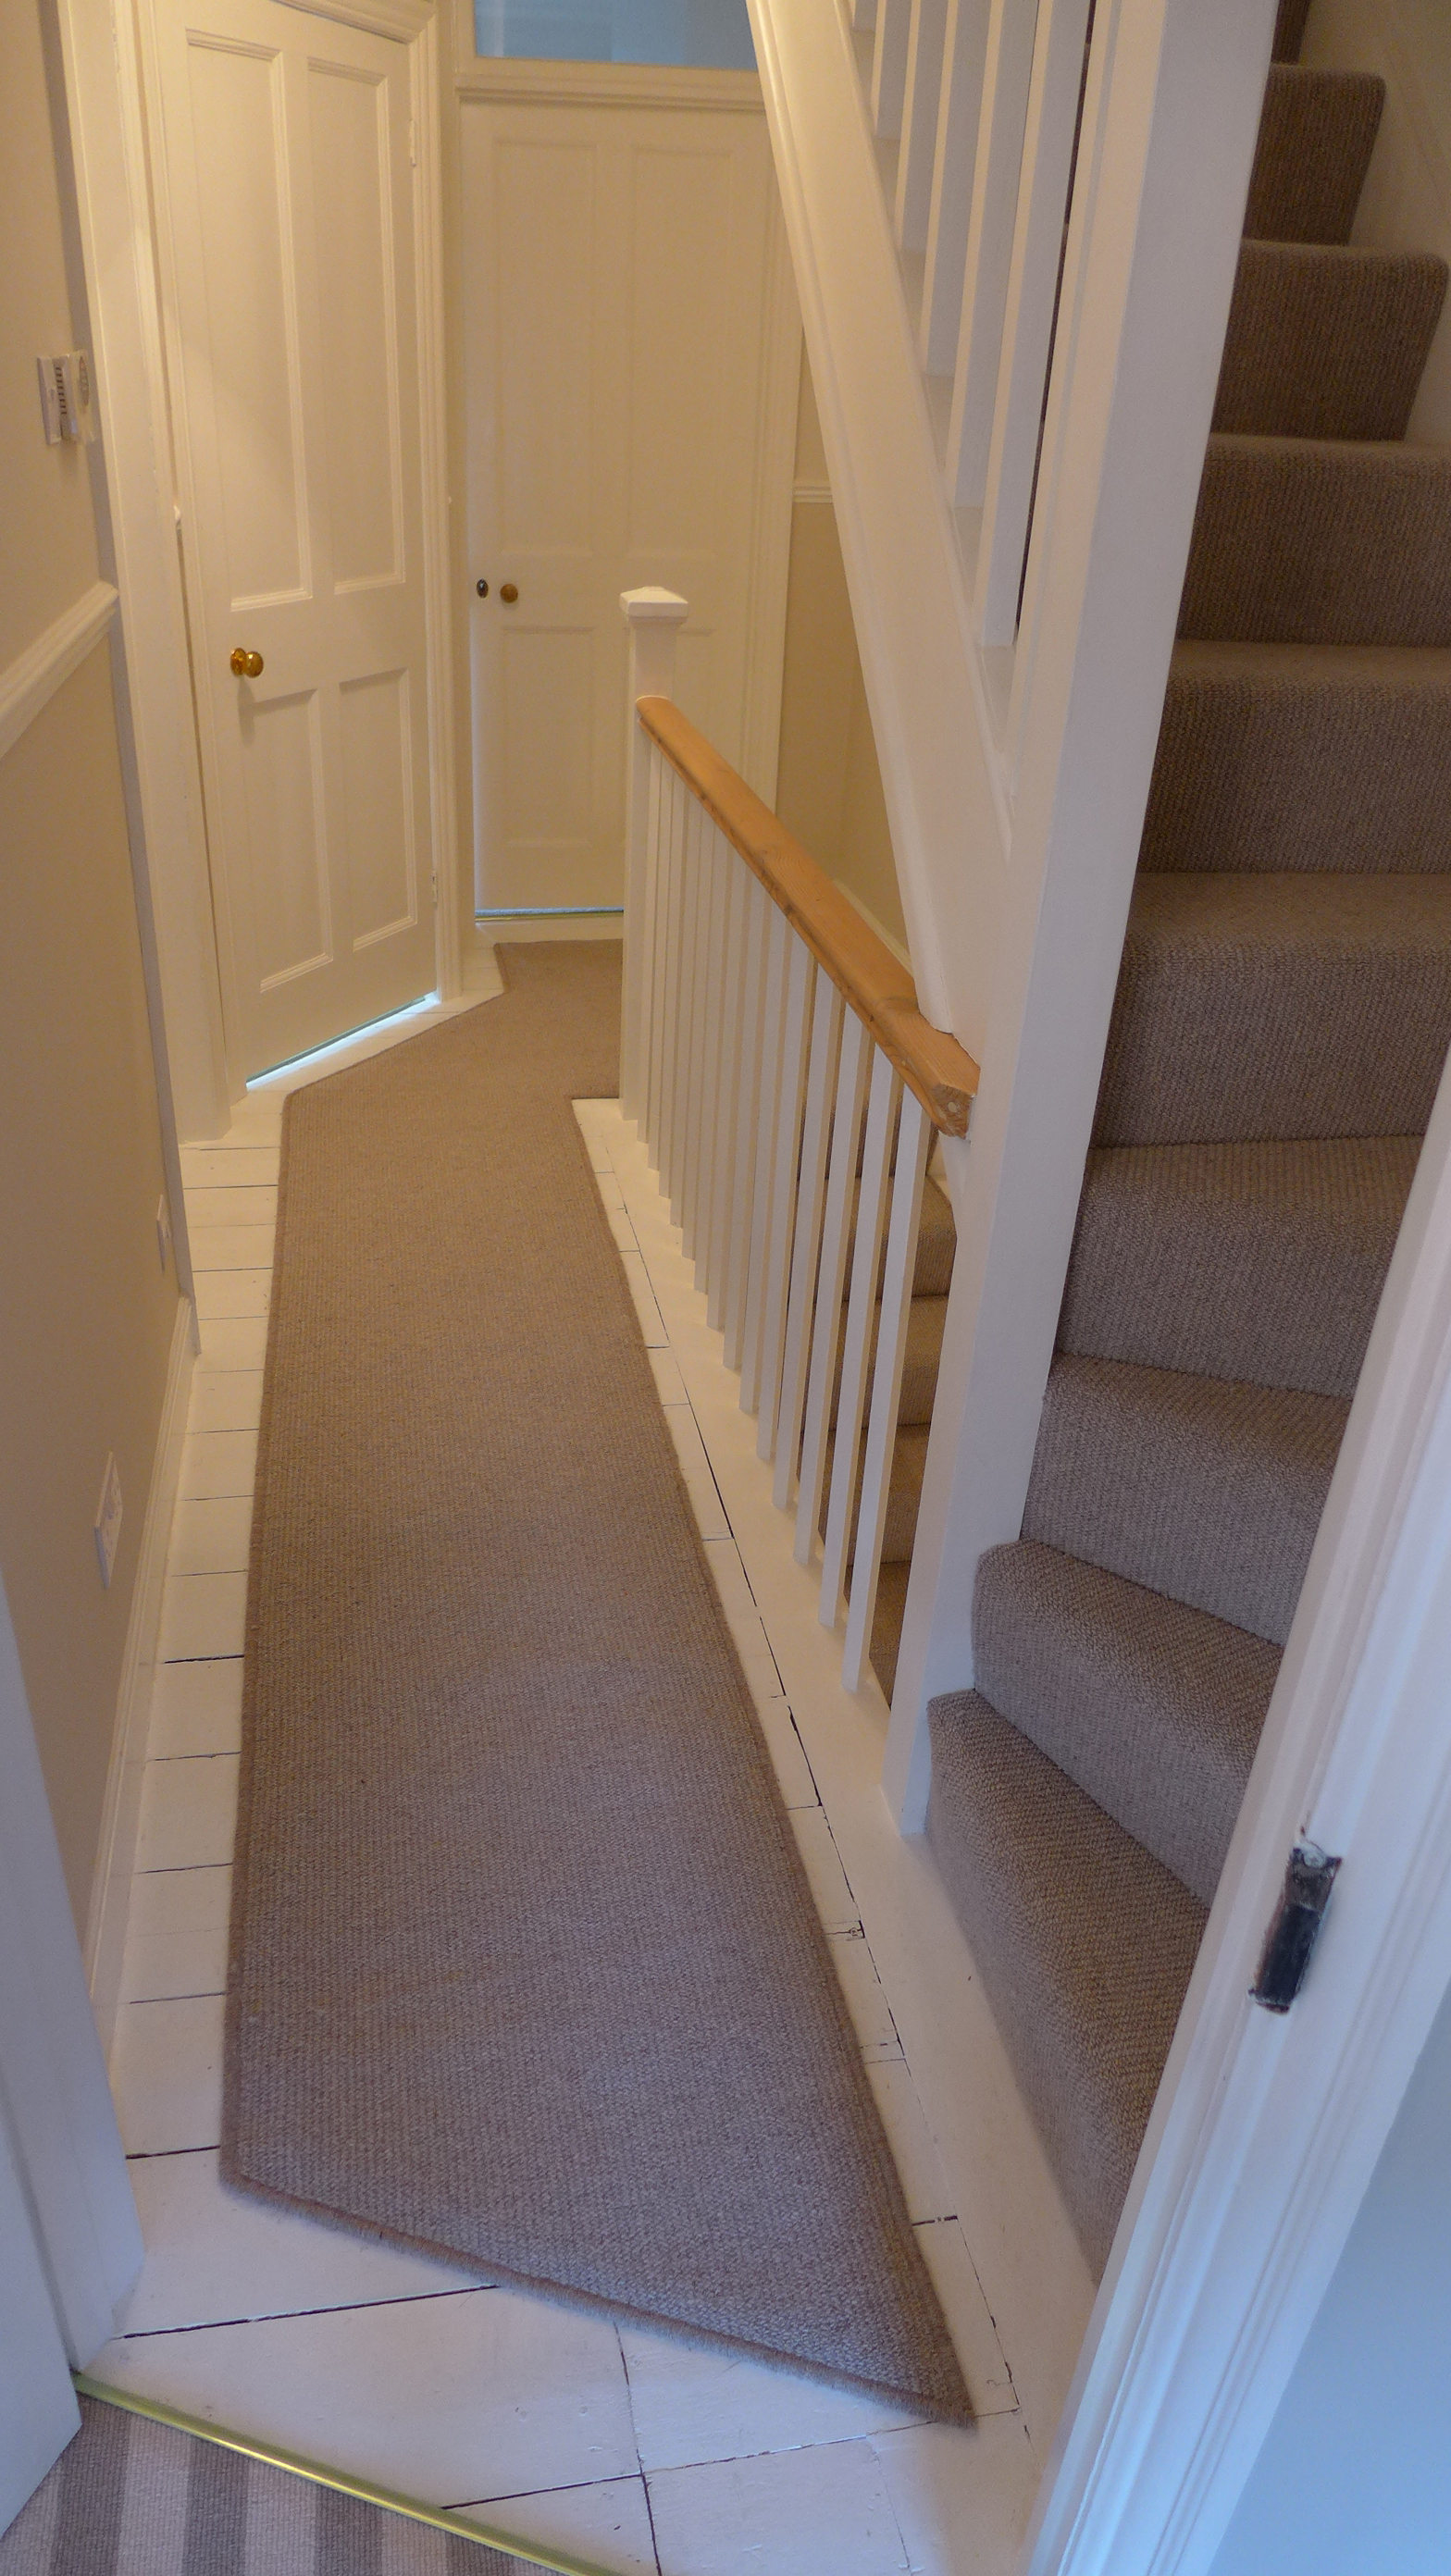 stair runner on landing